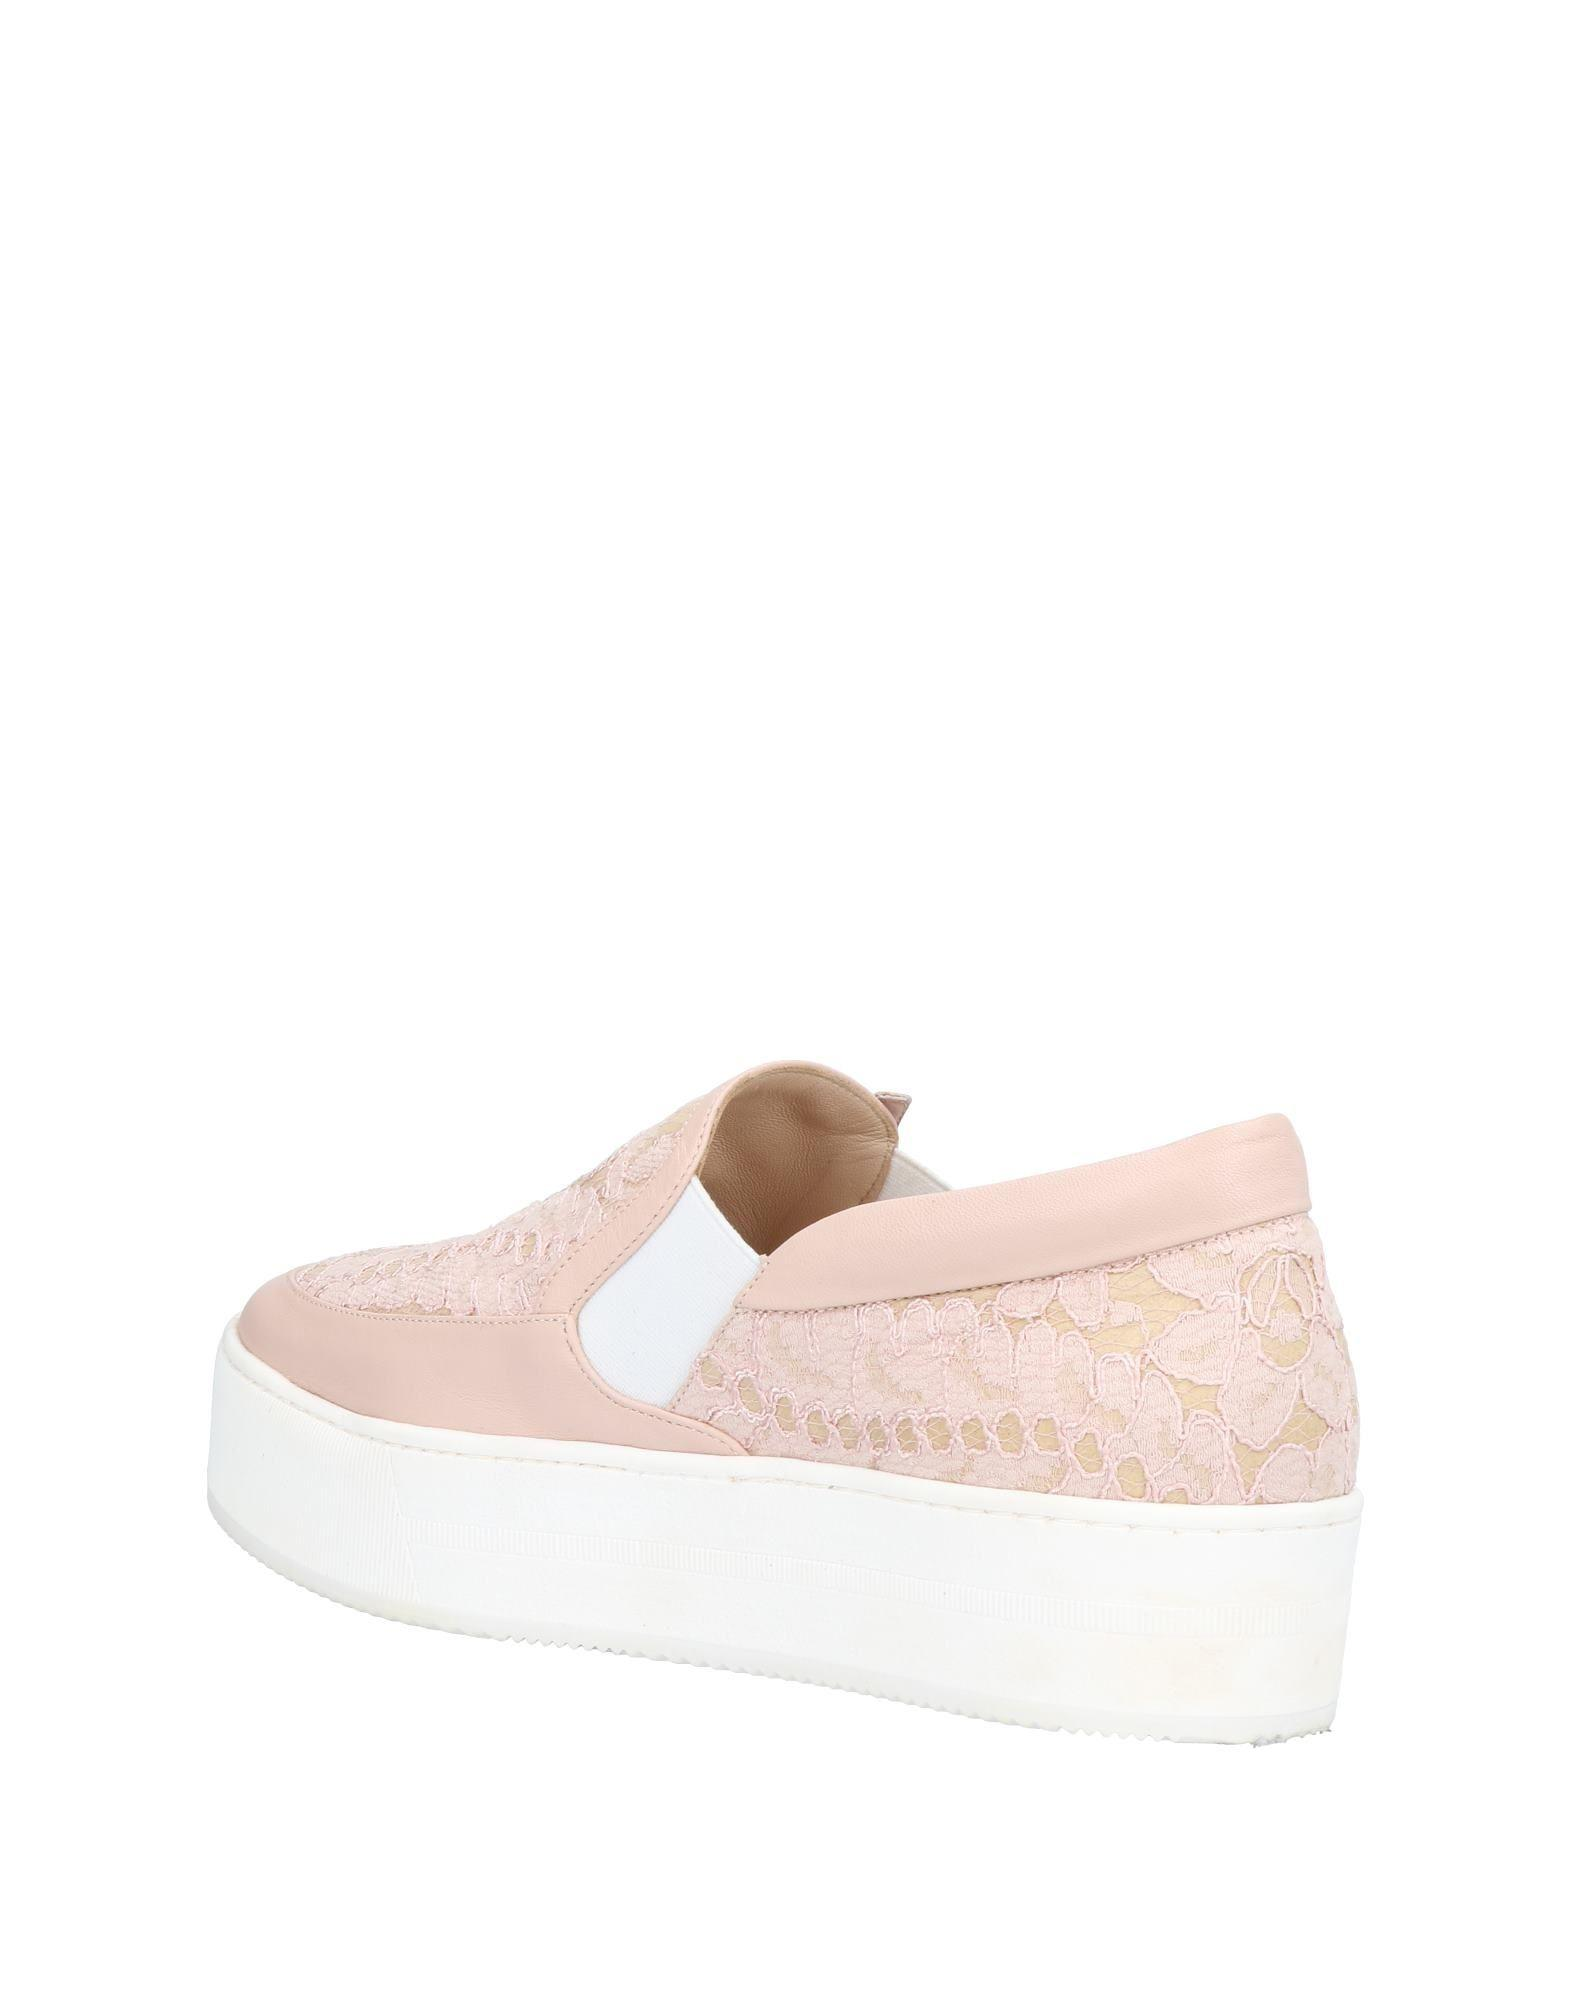 N°21 Lace Low-tops & Sneakers in Pale Pink (Pink)